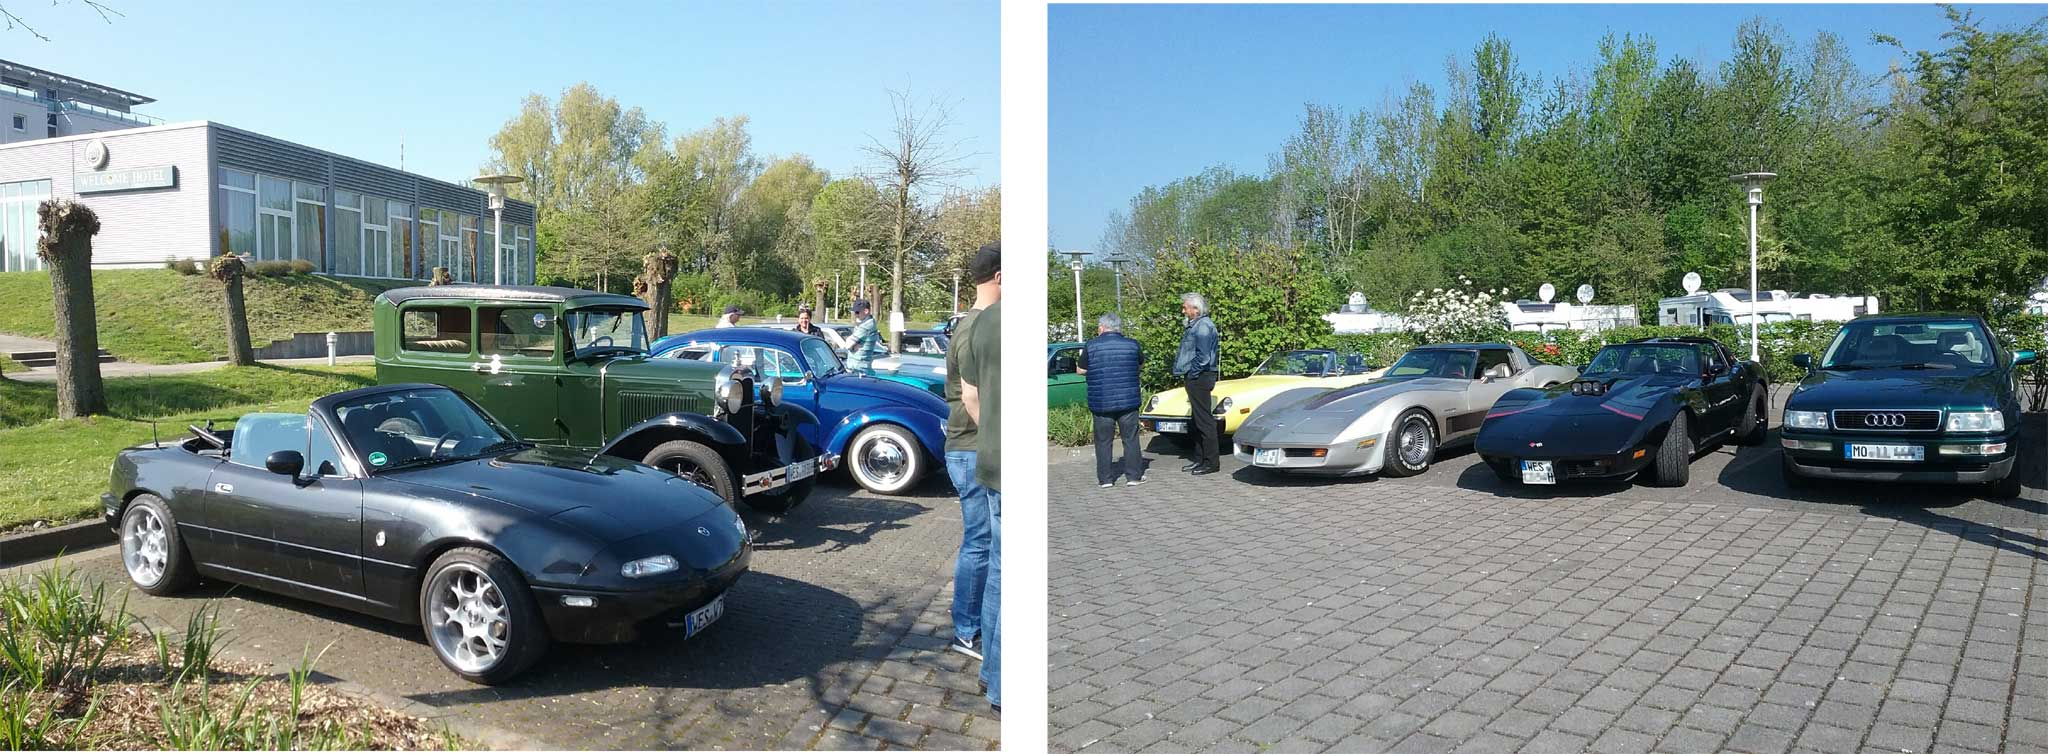 Youngtimer Events, Mehrere Corvette Stingray und der MX5